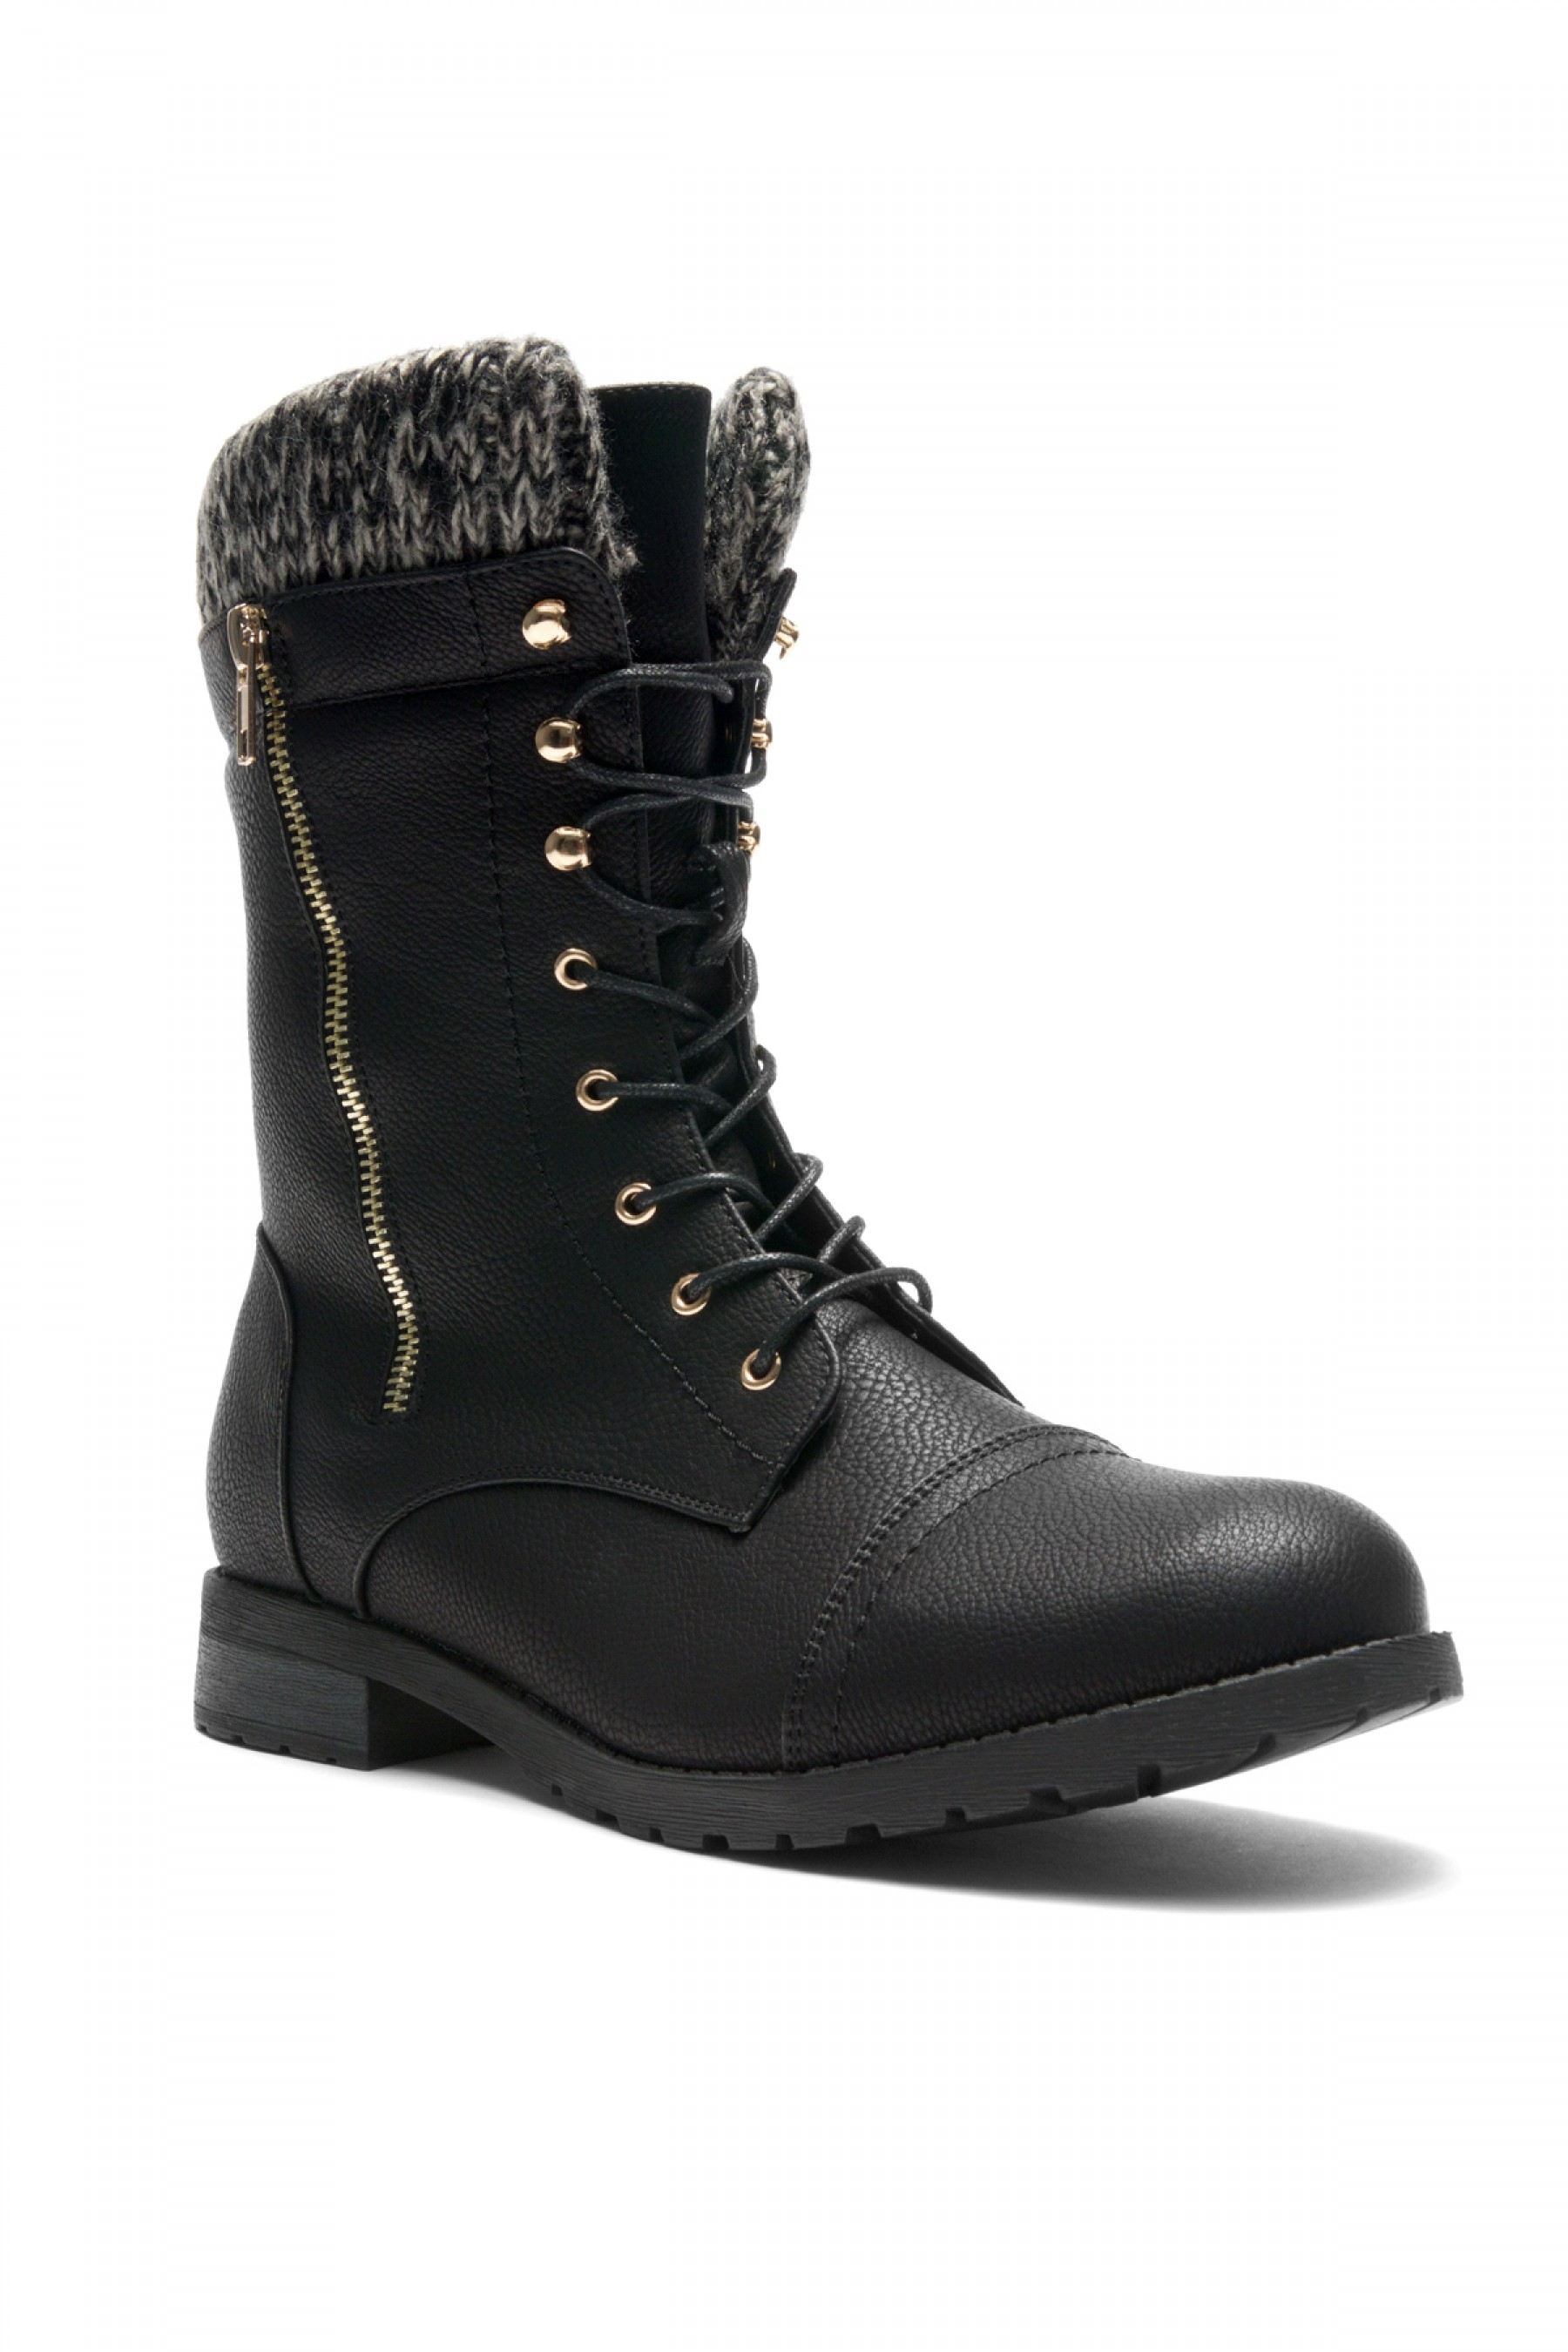 HerStyle Araviia-Lace Up Knit Ankle Cuff Low Heel Combat Boots (Black)